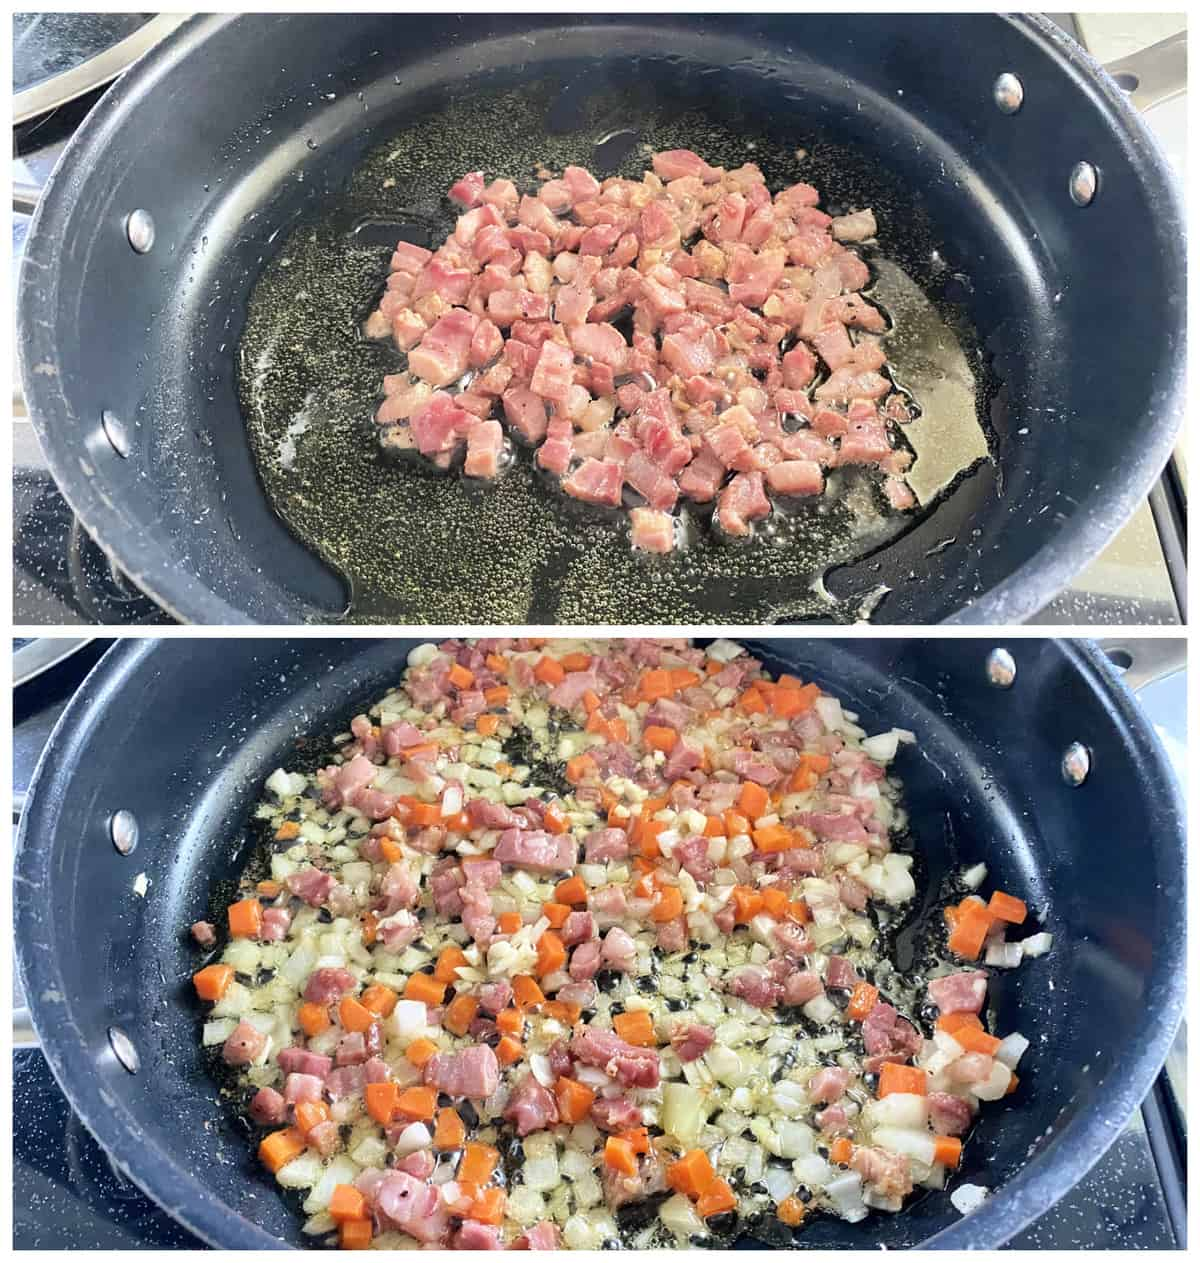 Two photos; Top of diced meat in an oil skillet. Bottom of diced onion, carrots, and meat in skillet.